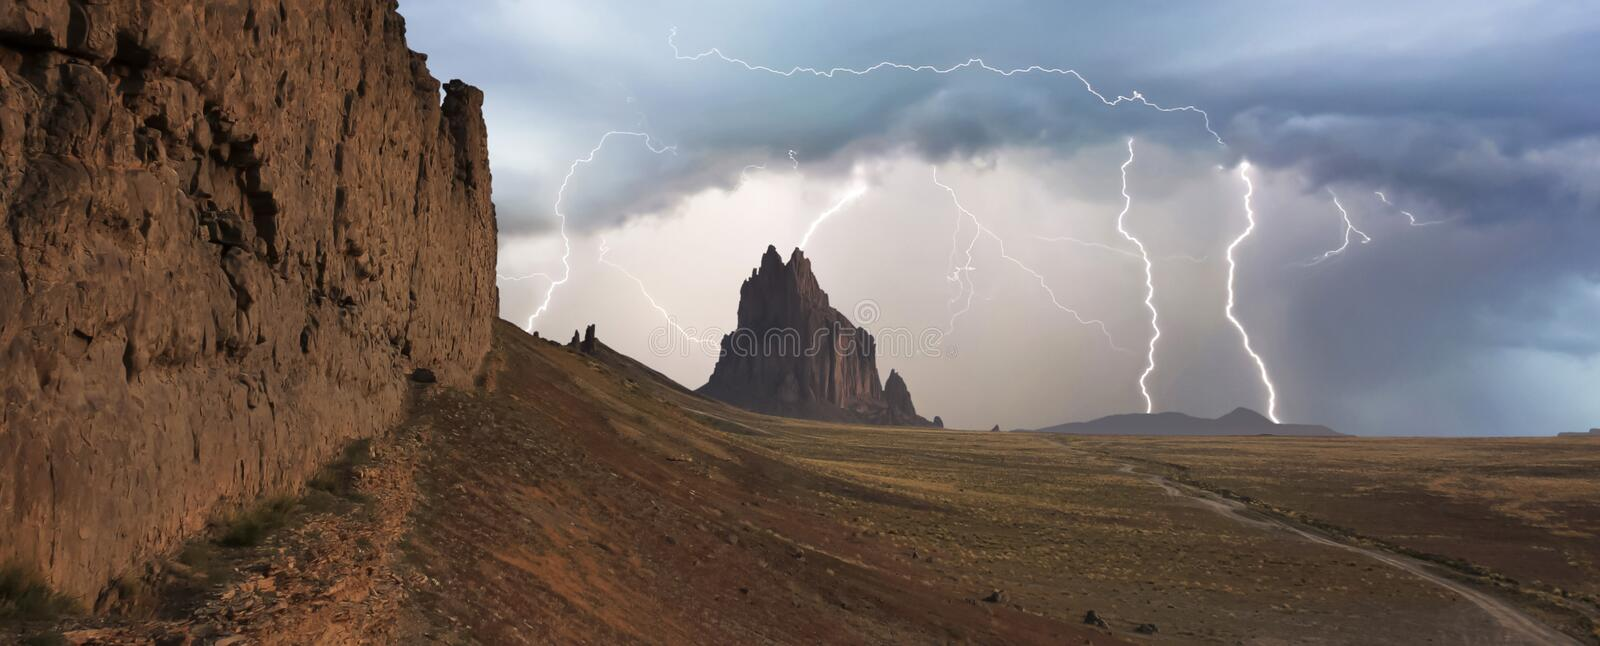 A Violent Thunderstorm at Shiprock, New Mexico stock image